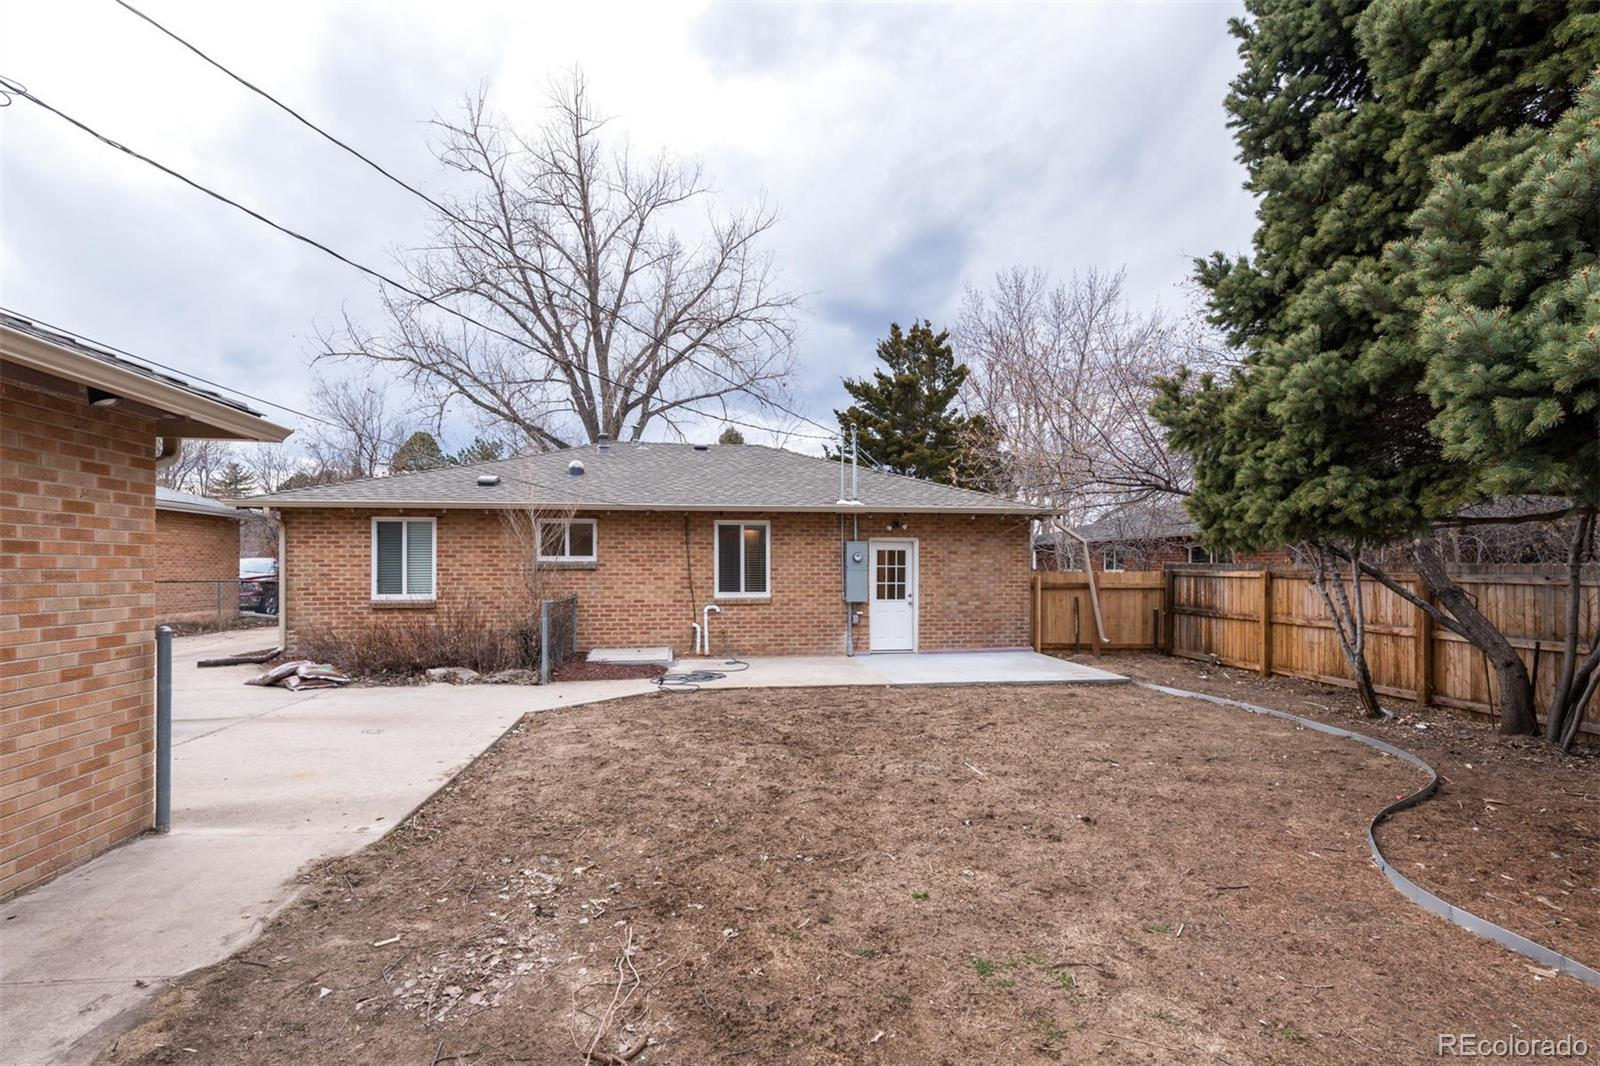 MLS# 7707187 - 20 - 2960 S Washington Street, Englewood, CO 80113